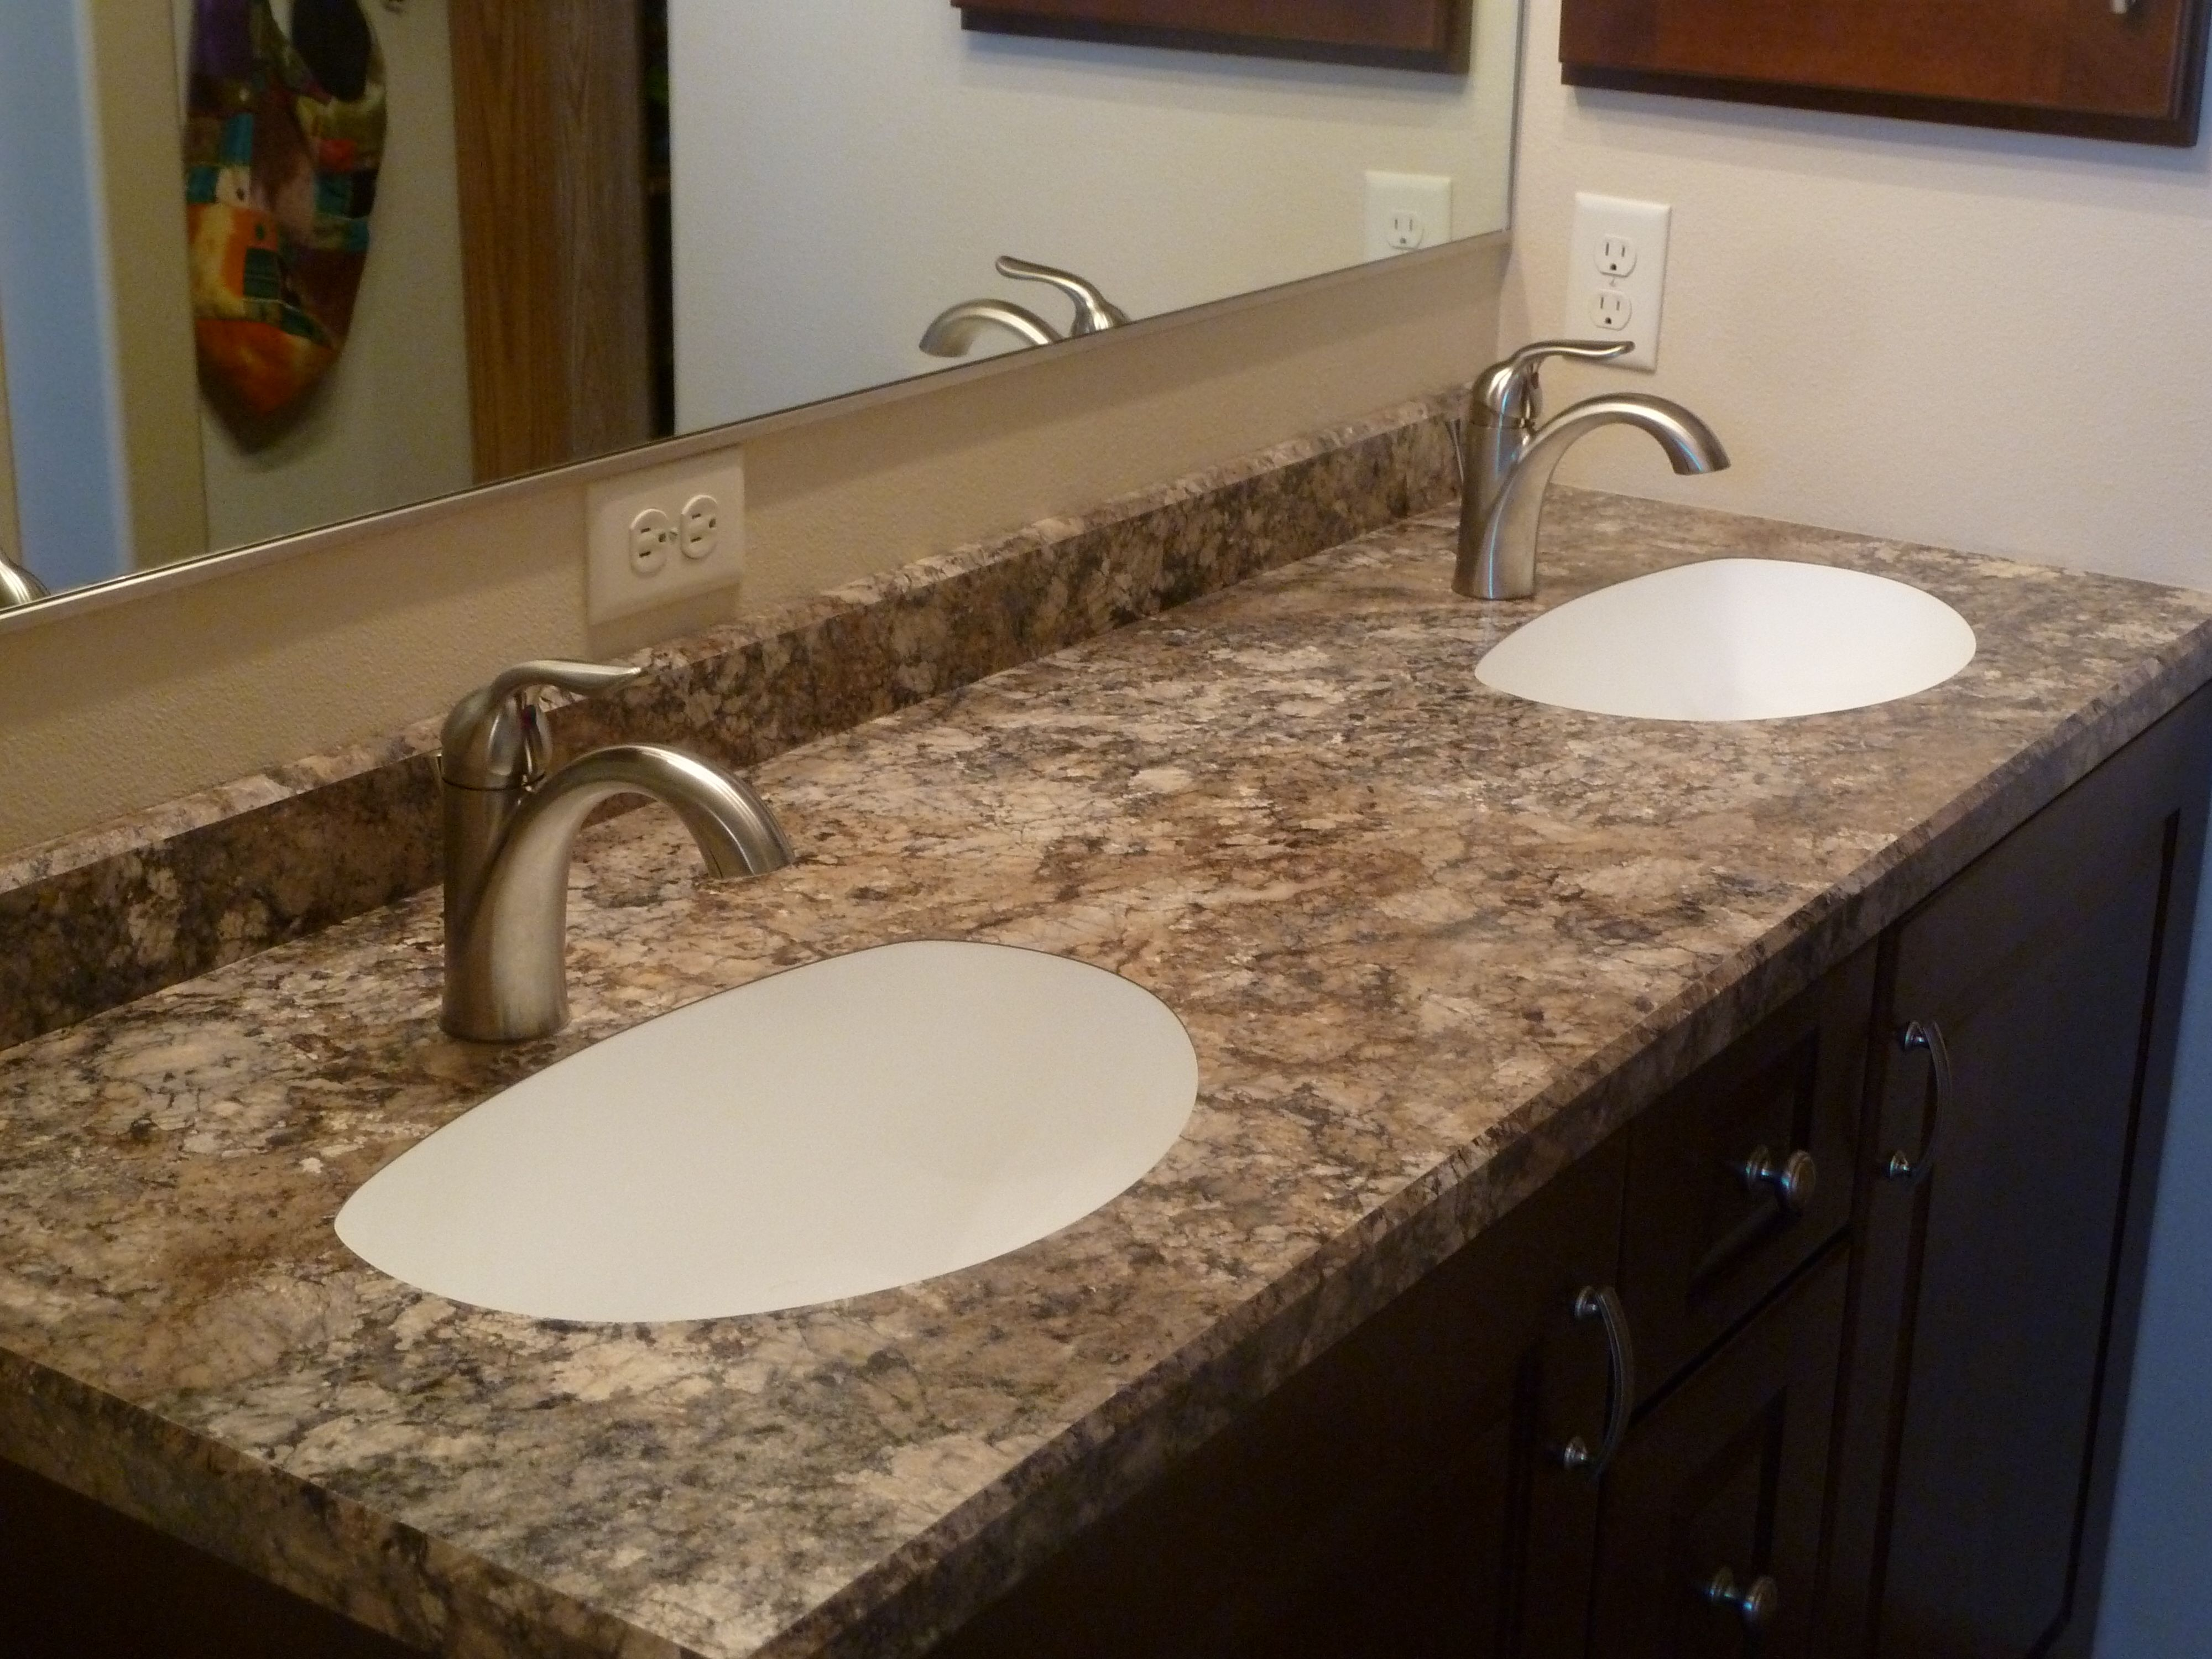 Double Undermount Karran Sinks In Wilsonart Laminate Counter Top With Images Sink Laminate Countertops Laminate Counter